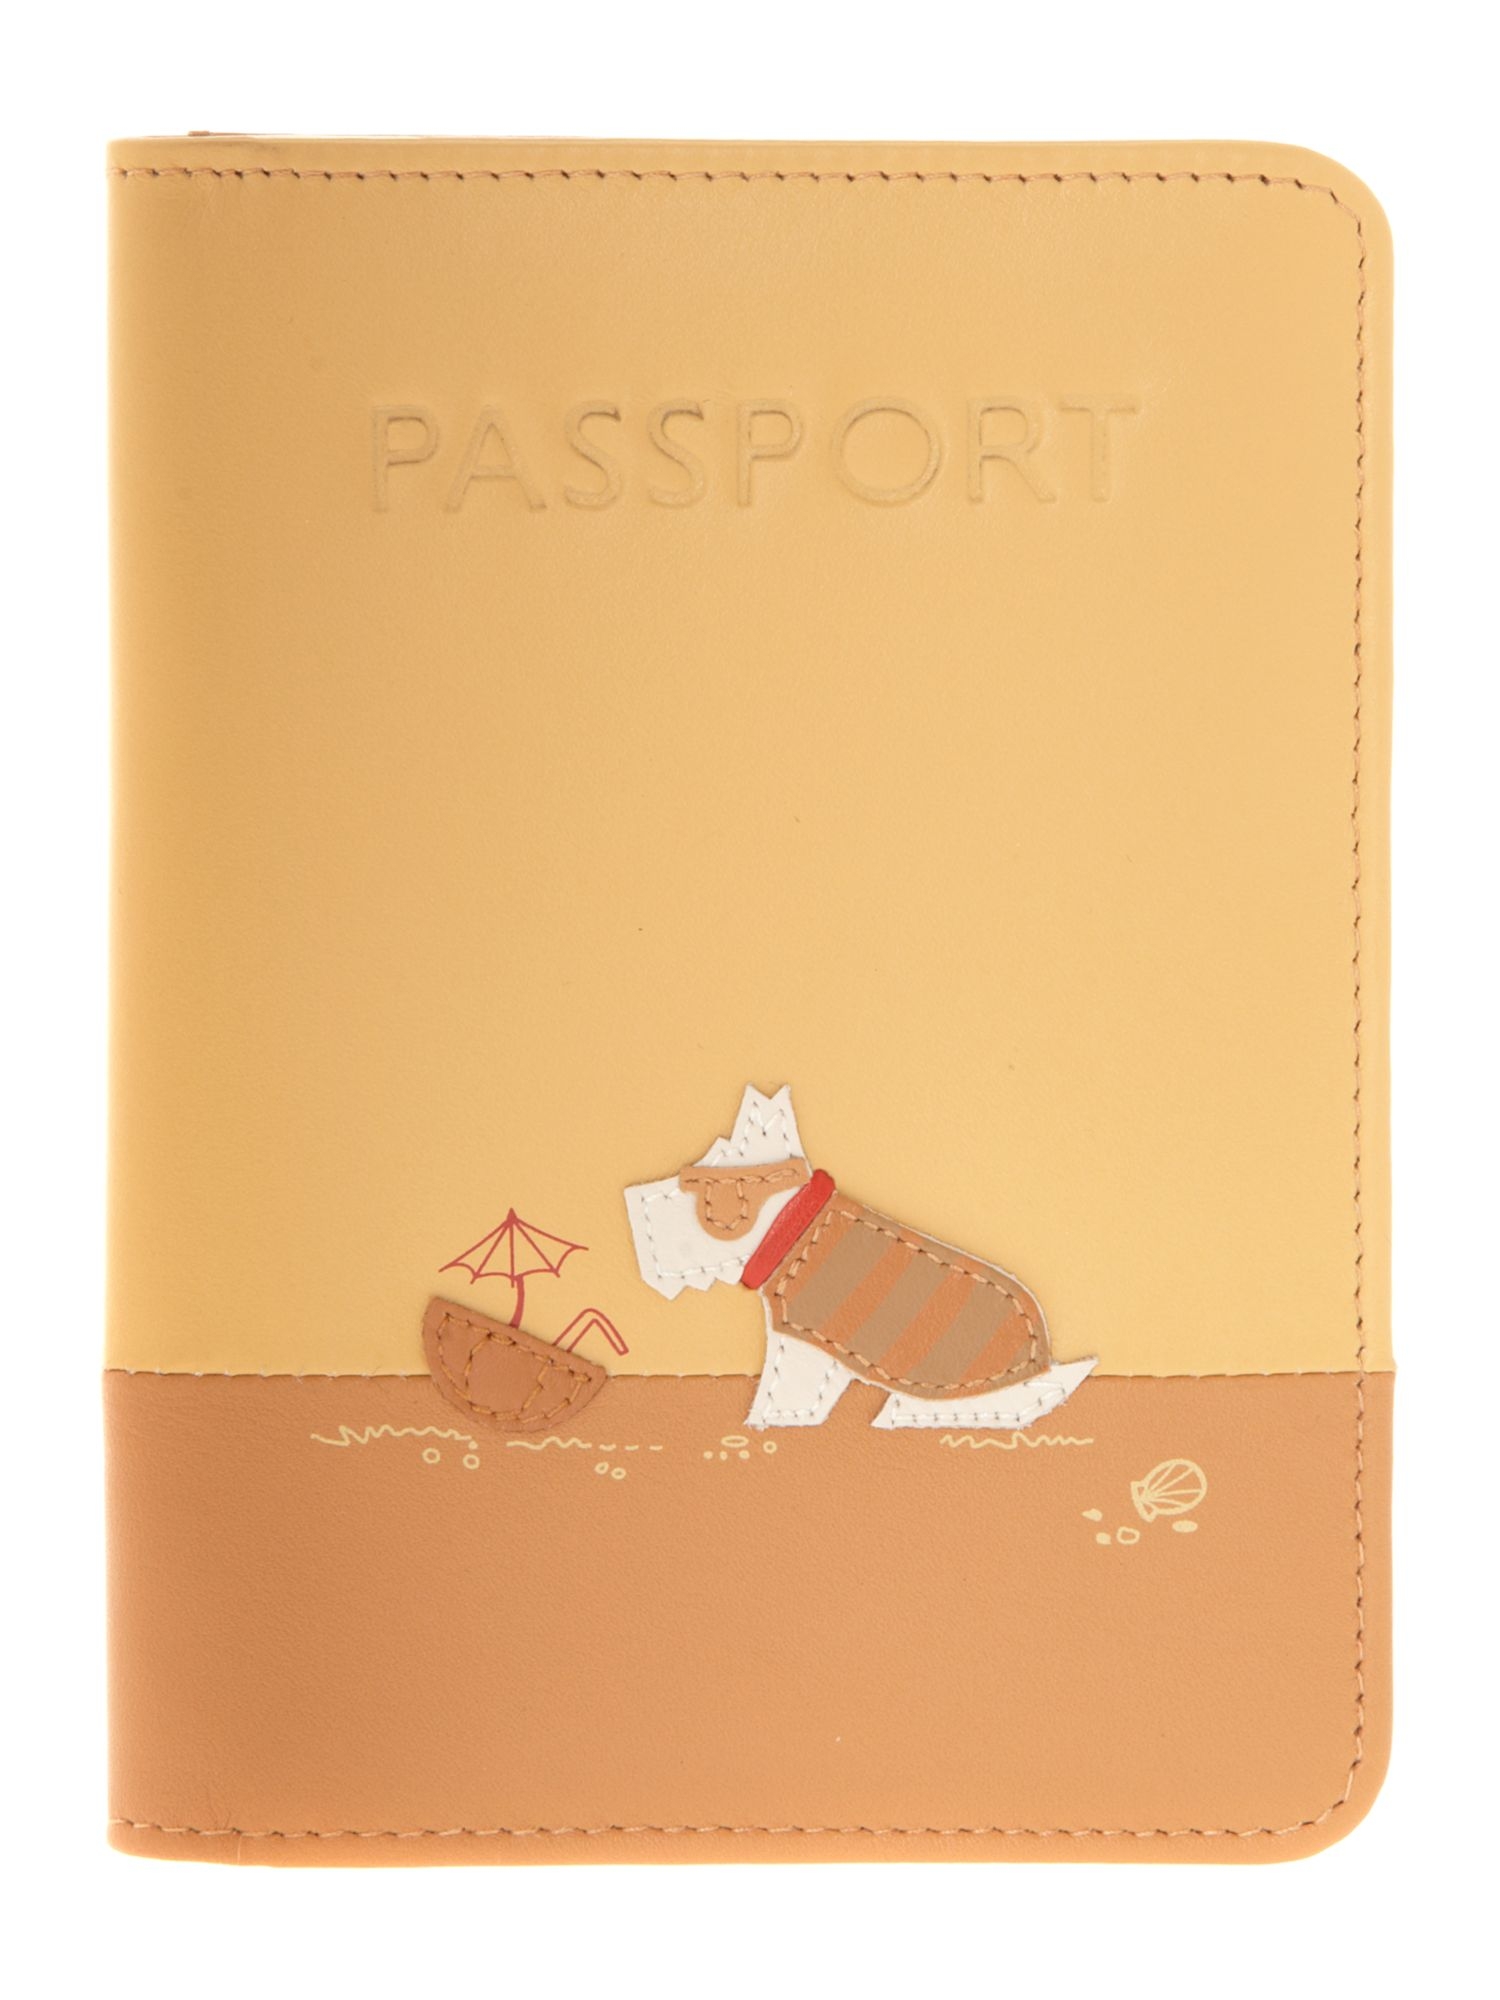 In the sun passport cover